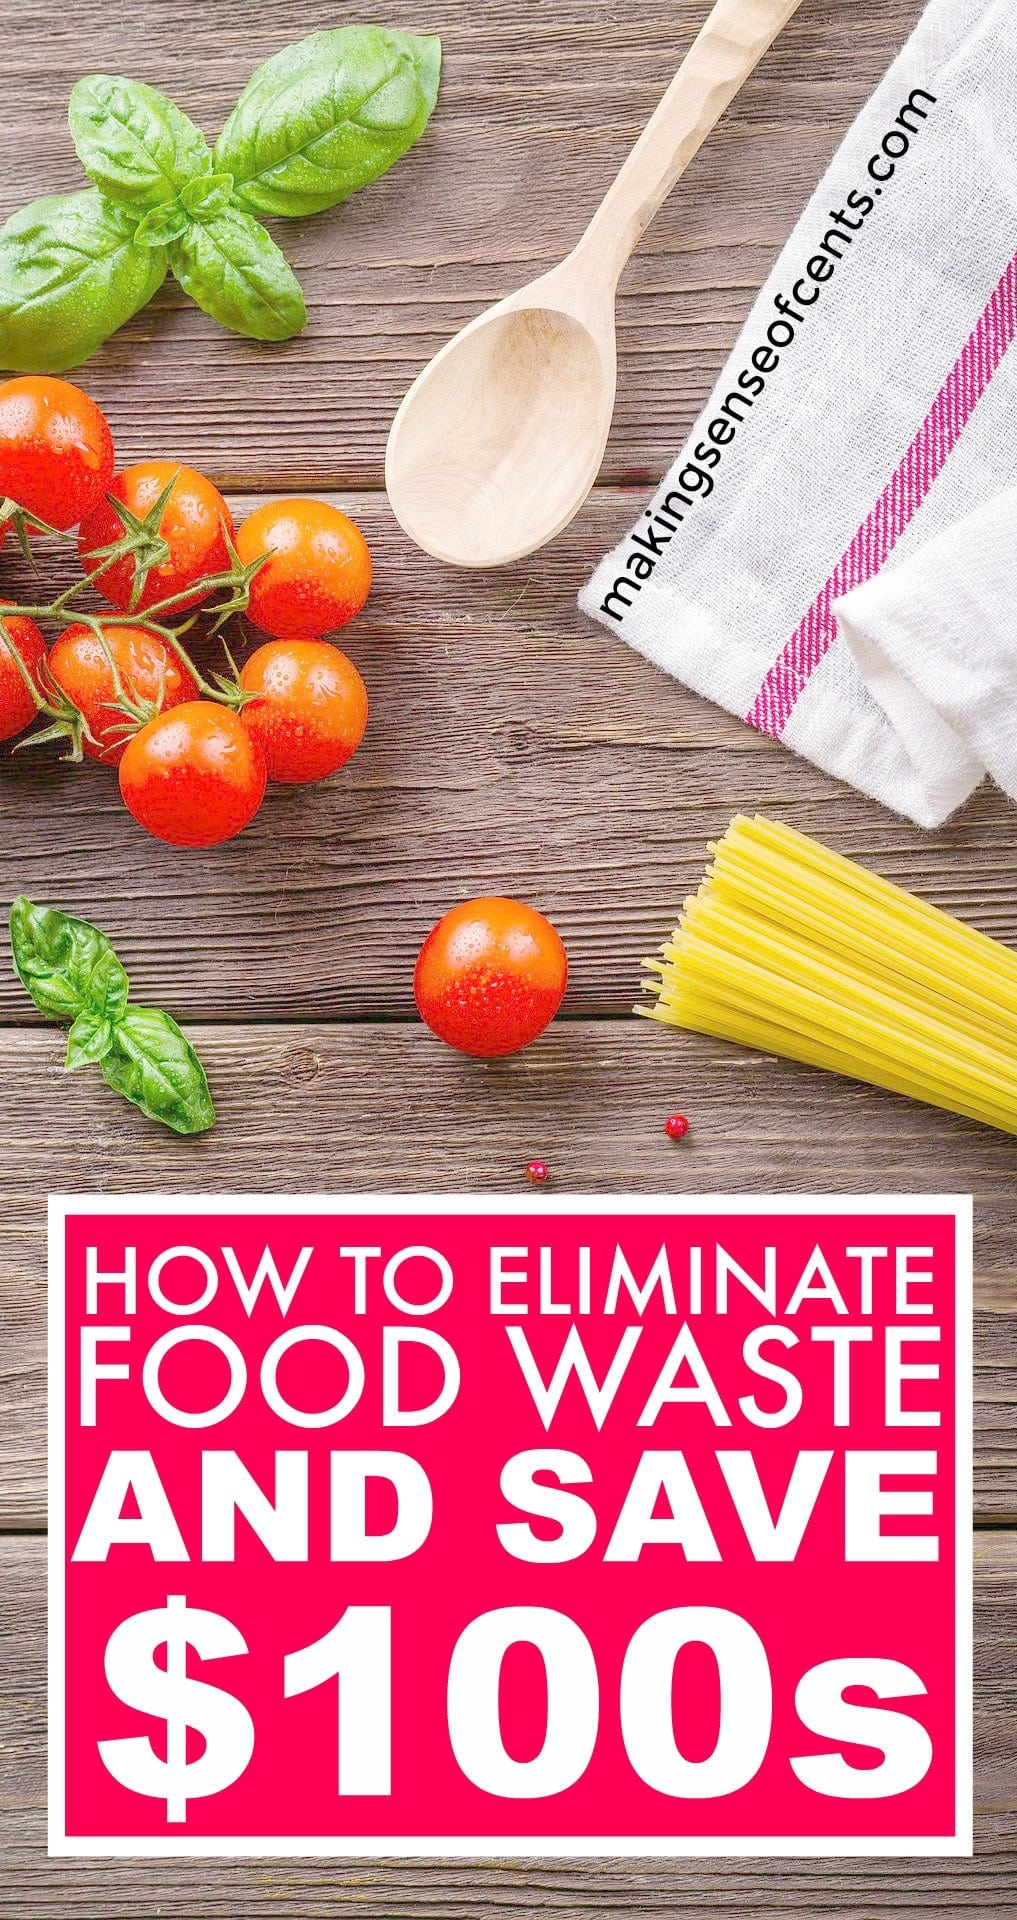 Find out how to eliminate foodwaste and save hundreds. This is a great list!